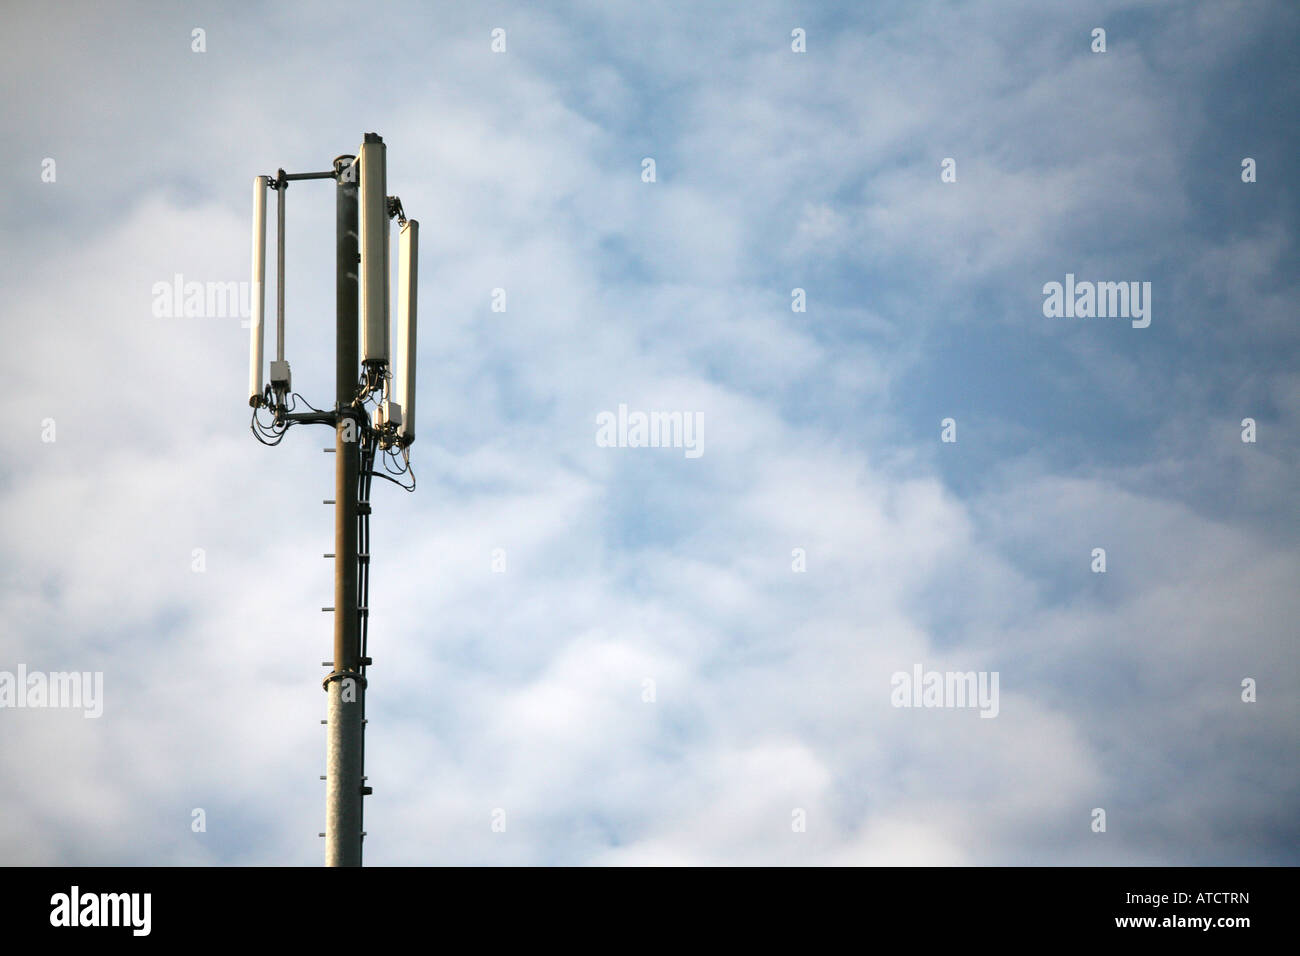 Mobile phone antenna - Stock Image